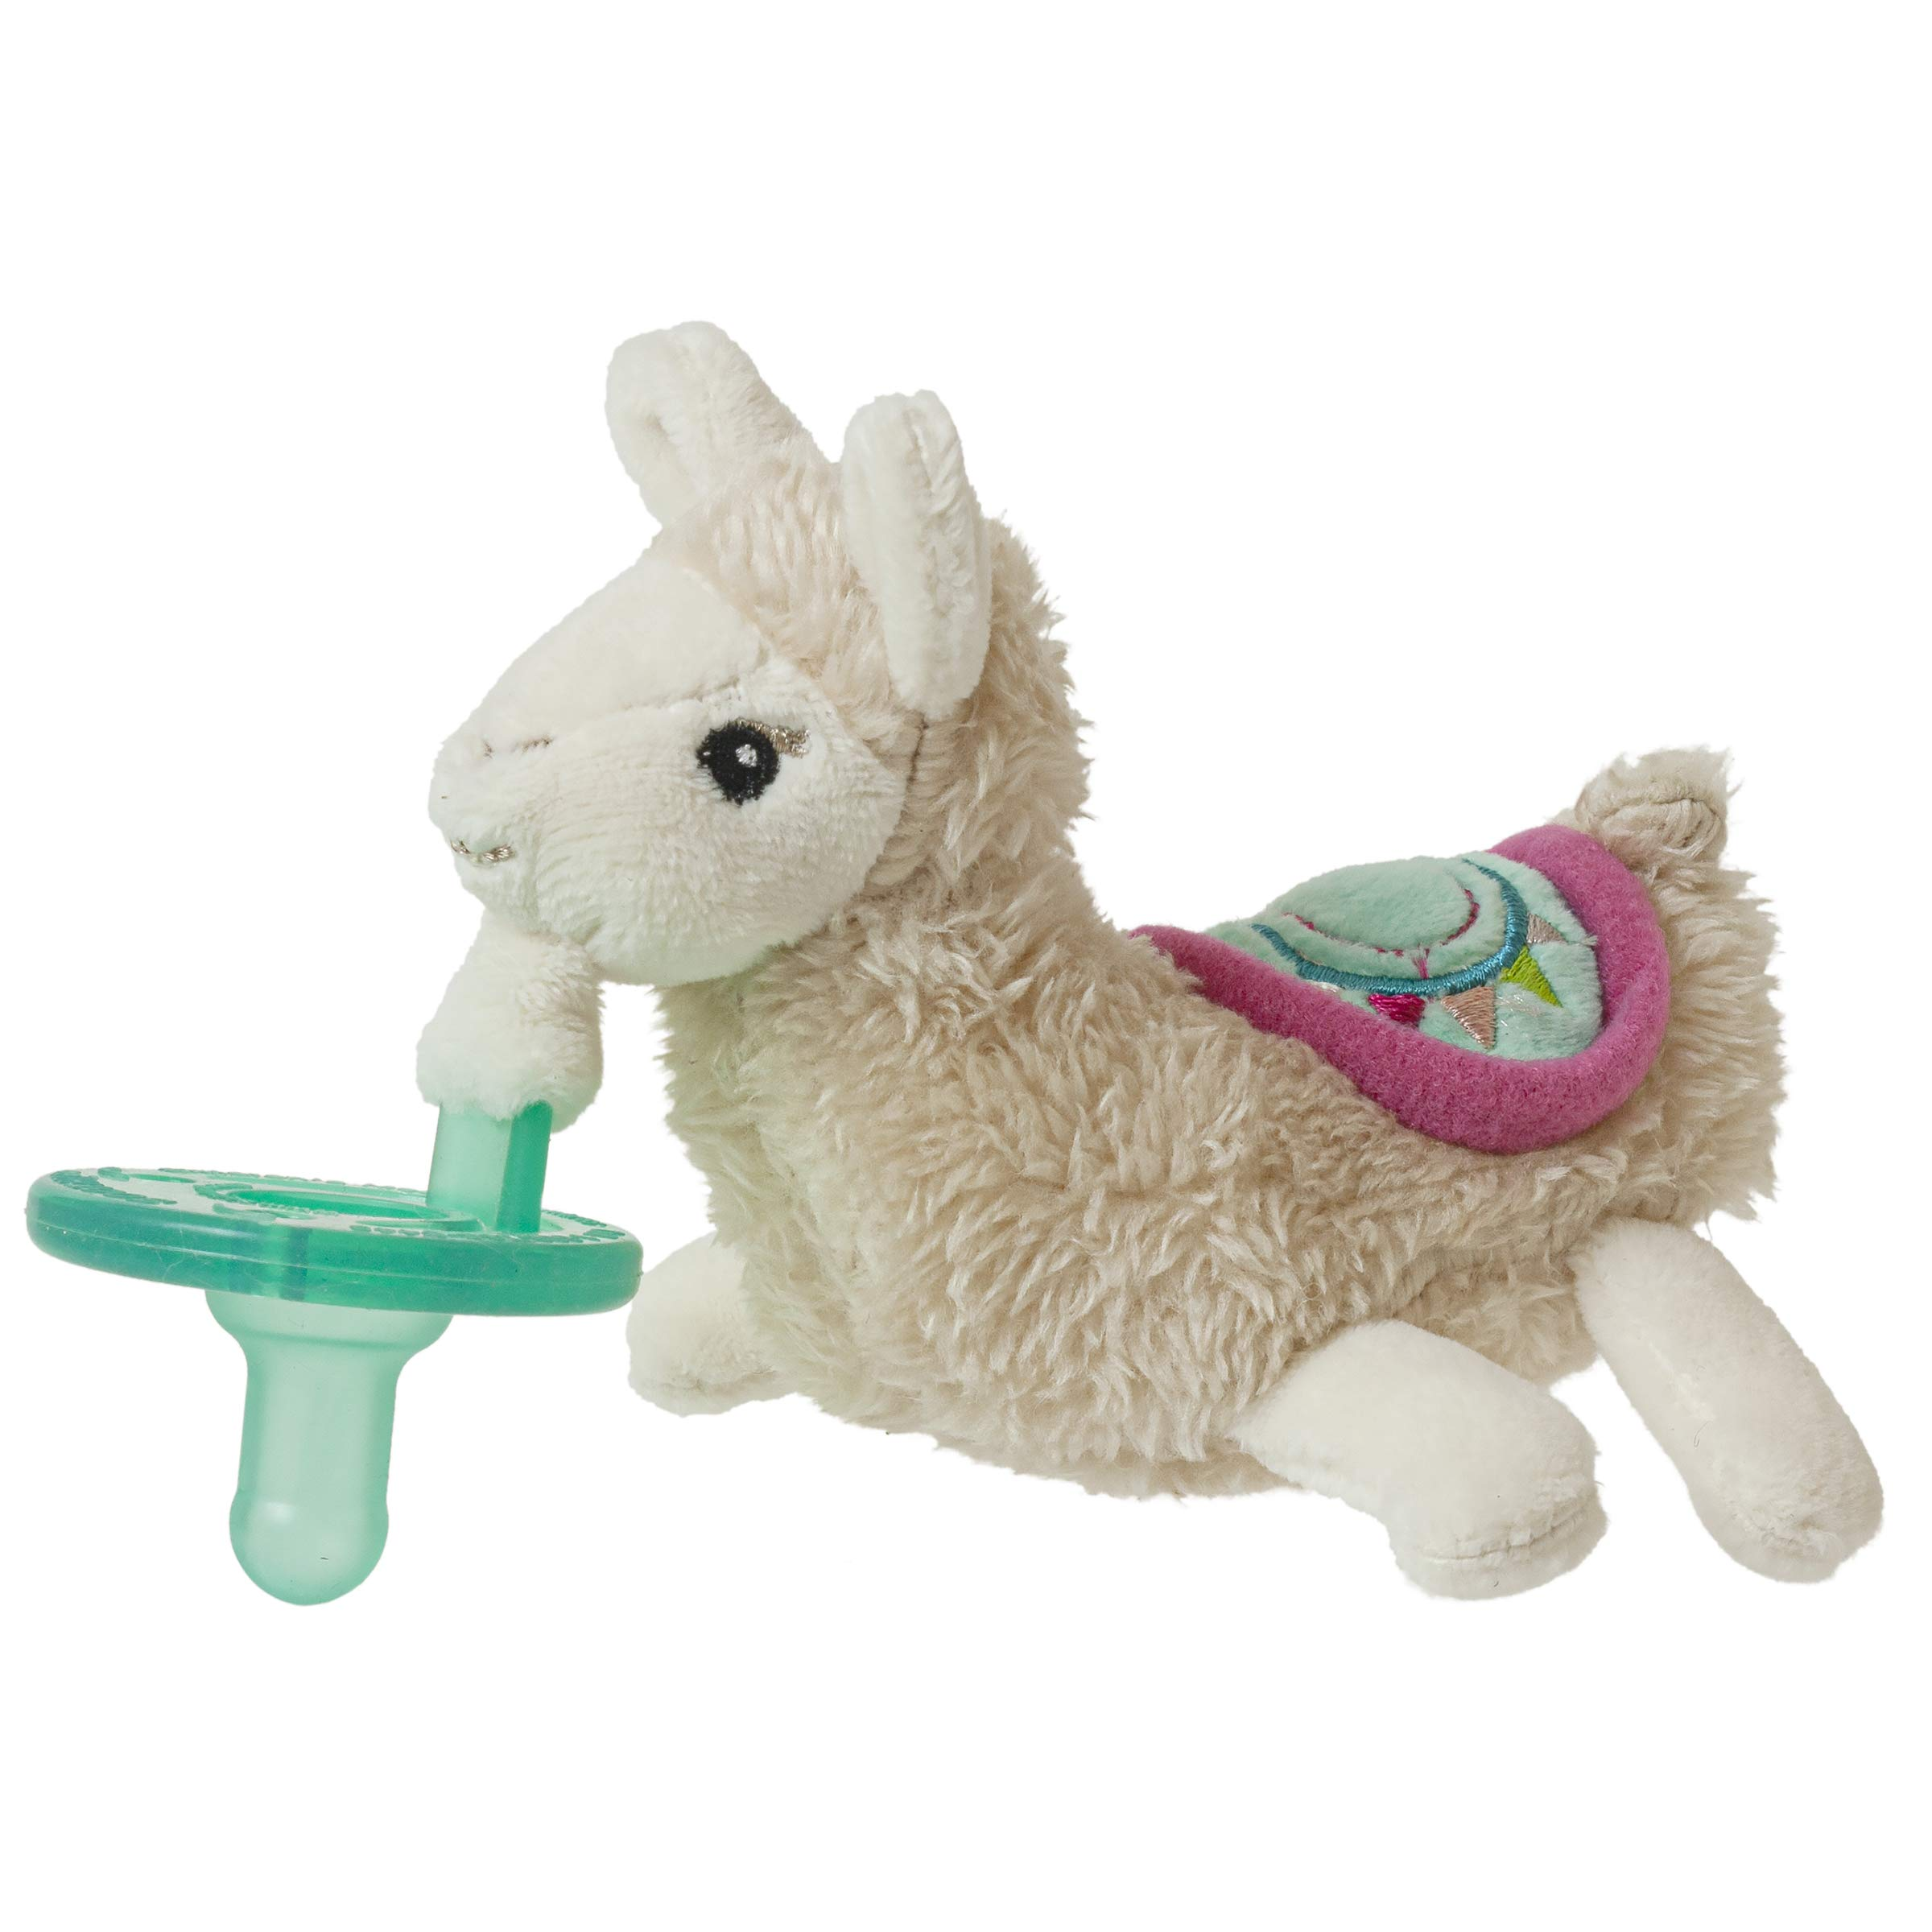 Mary Meyer WubbaNub Soft Toy and Infant Pacifier, LilyLlama by Mary Meyer